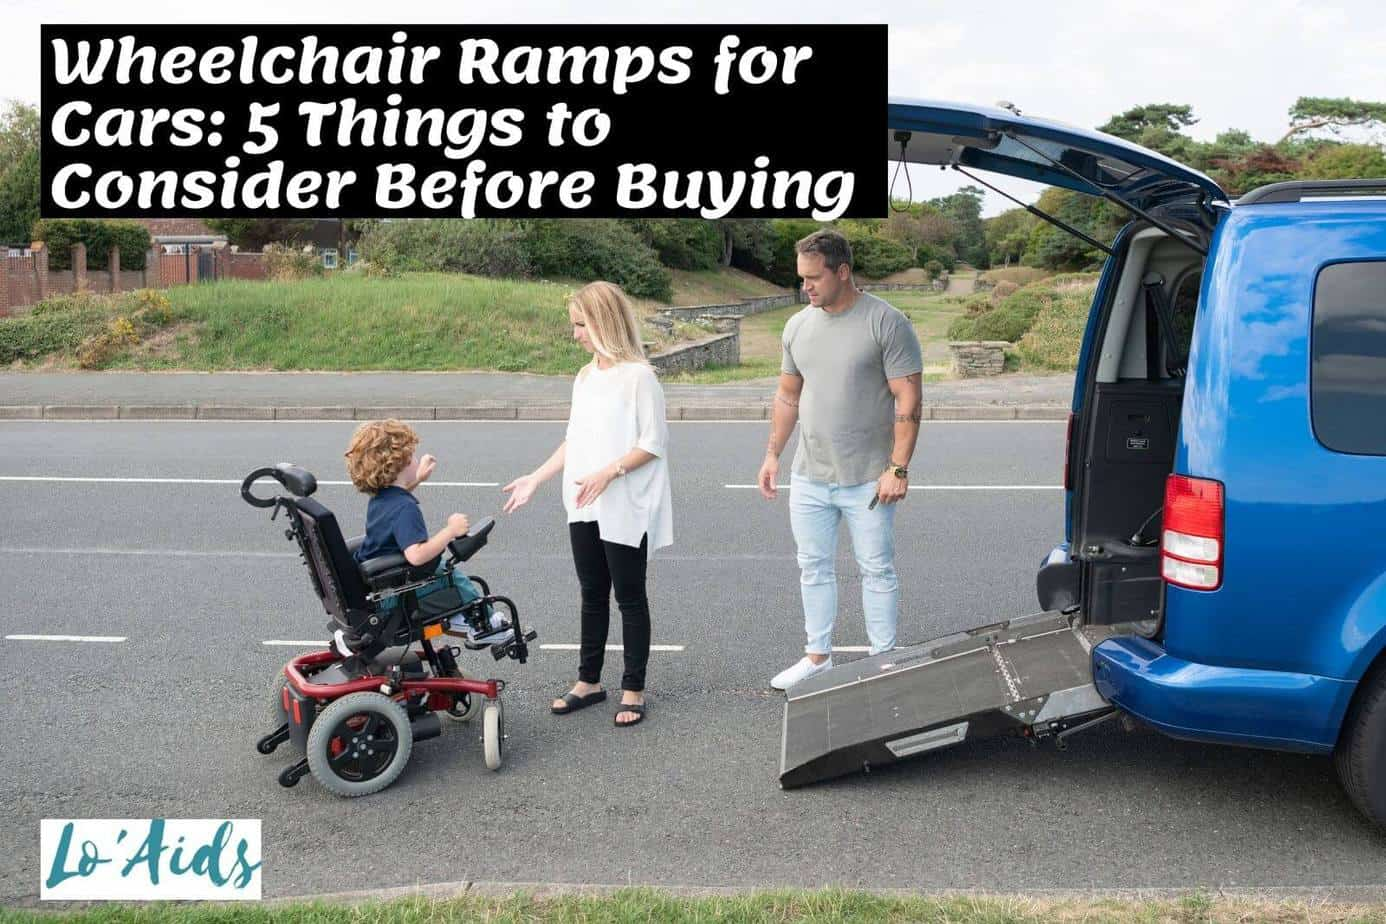 parents helping their kid in a wheelchair while using foldout ramp